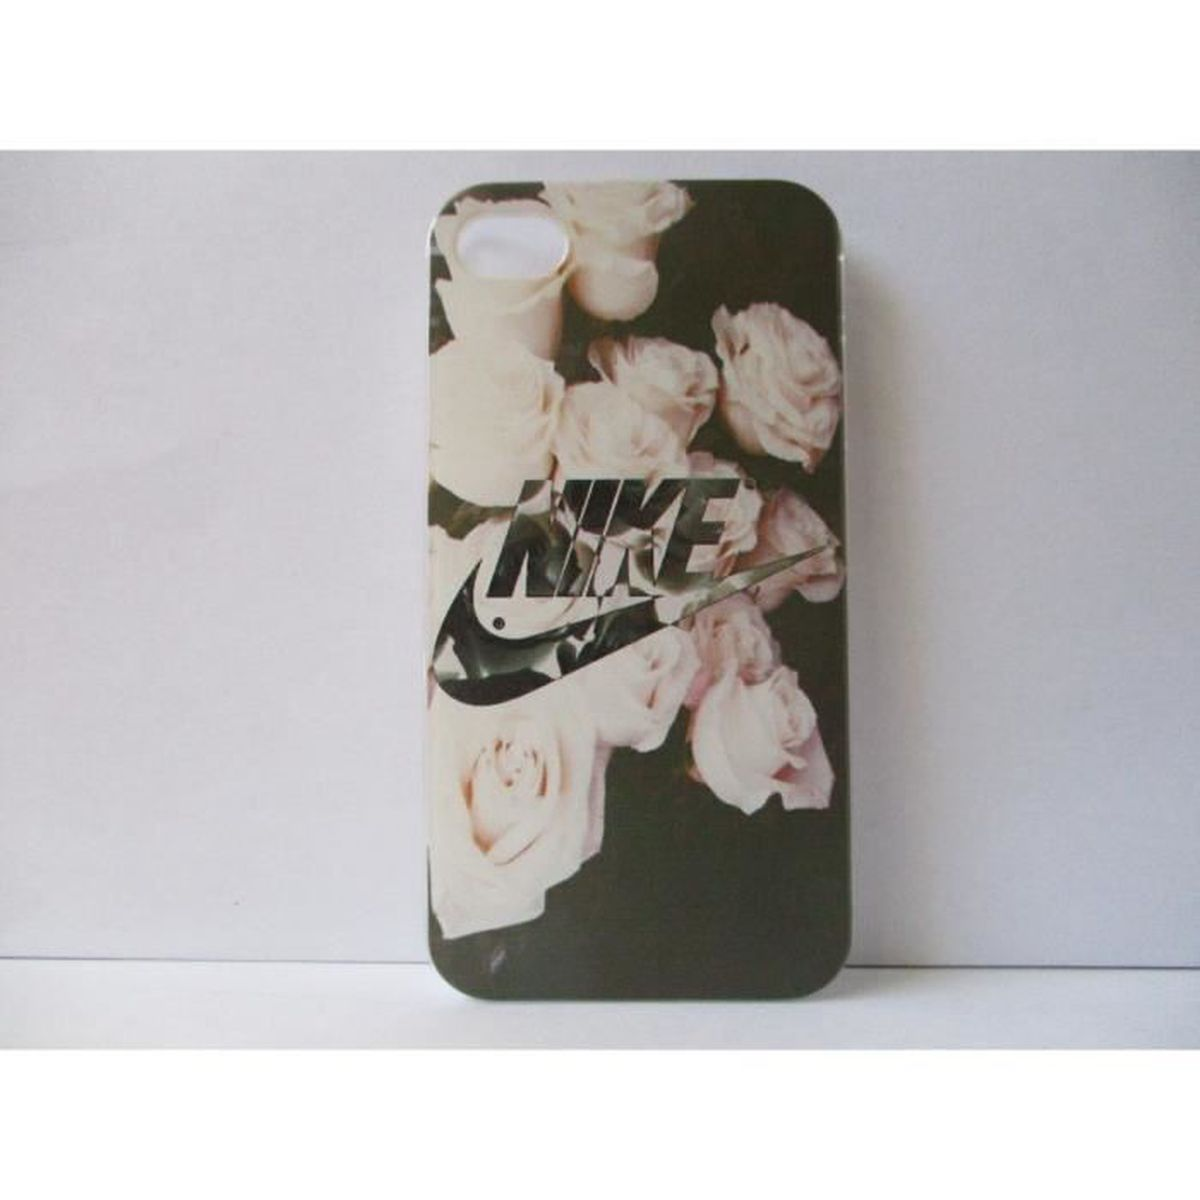 coque nike iphone 4 4s neuf motif g achat coque bumper. Black Bedroom Furniture Sets. Home Design Ideas